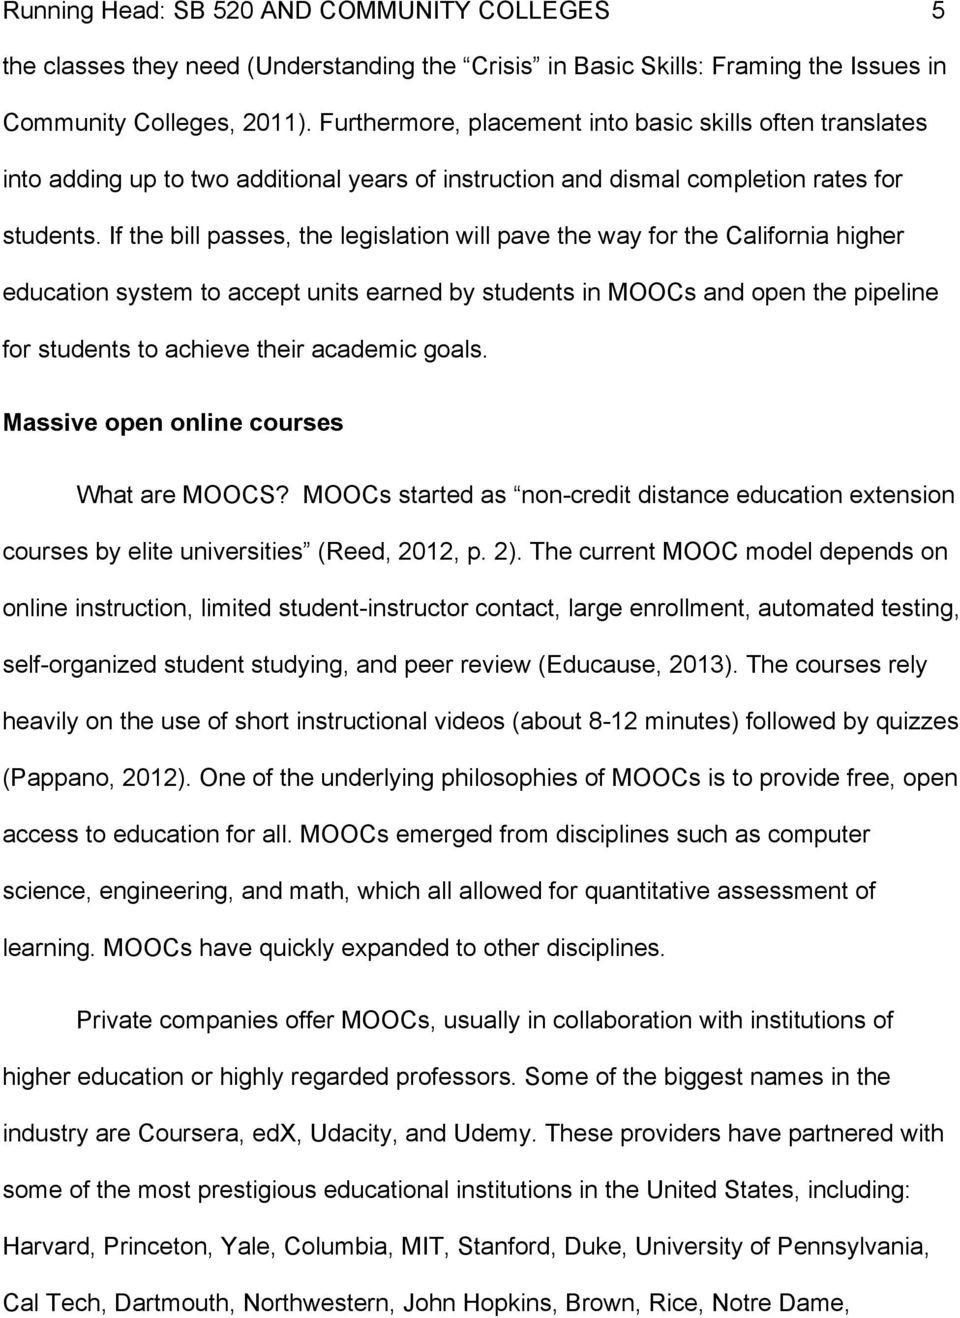 If the bill passes, the legislation will pave the way for the California higher education system to accept units earned by students in MOOCs and open the pipeline for students to achieve their